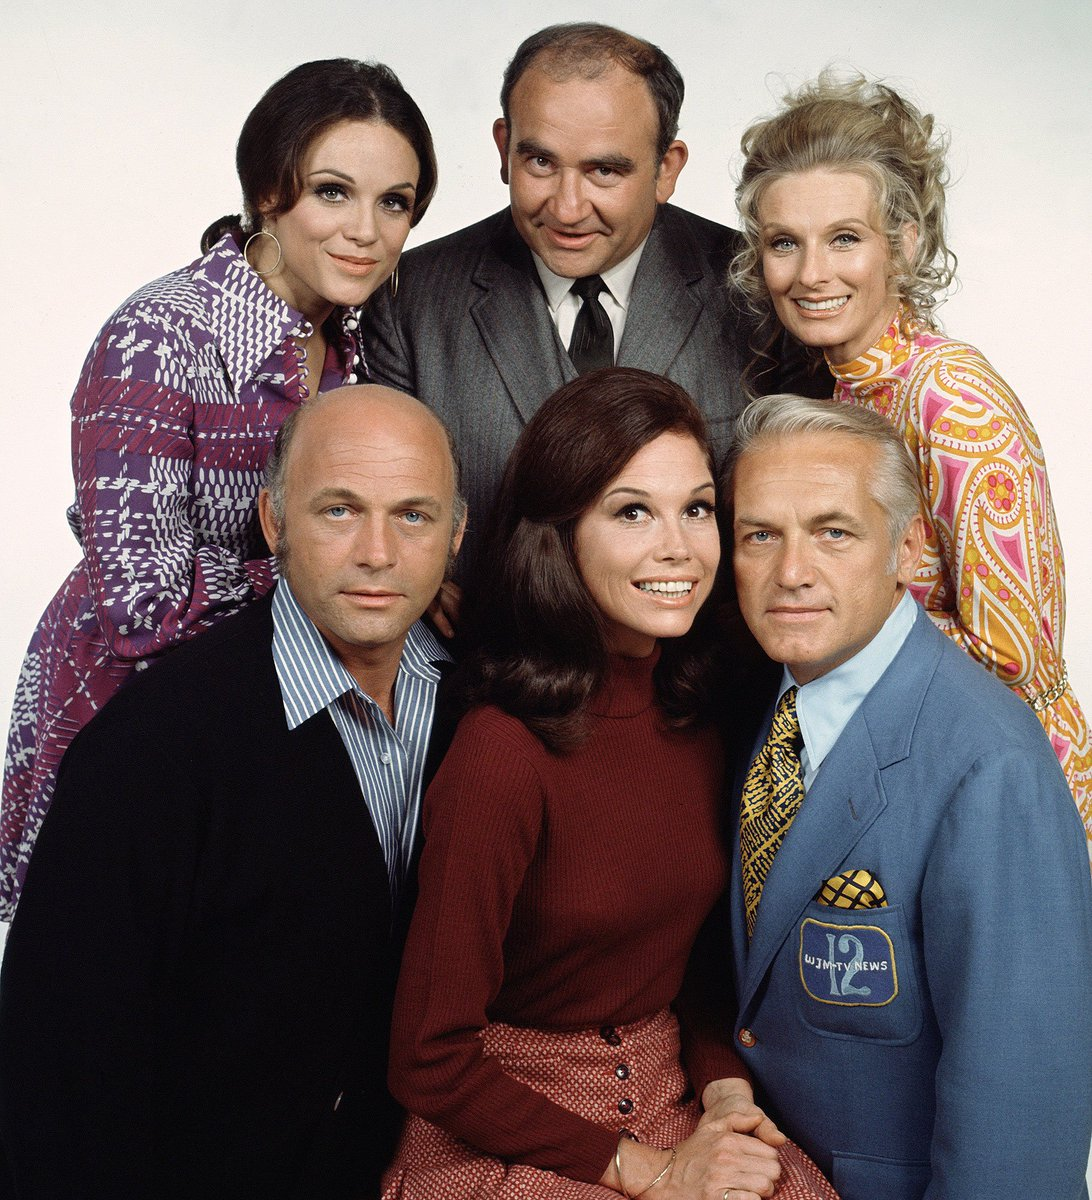 Ages of Mary Tyler Moore cast at the time this photo was taken: Front row: 39, 33, 46 Back row: 30, 40, 44